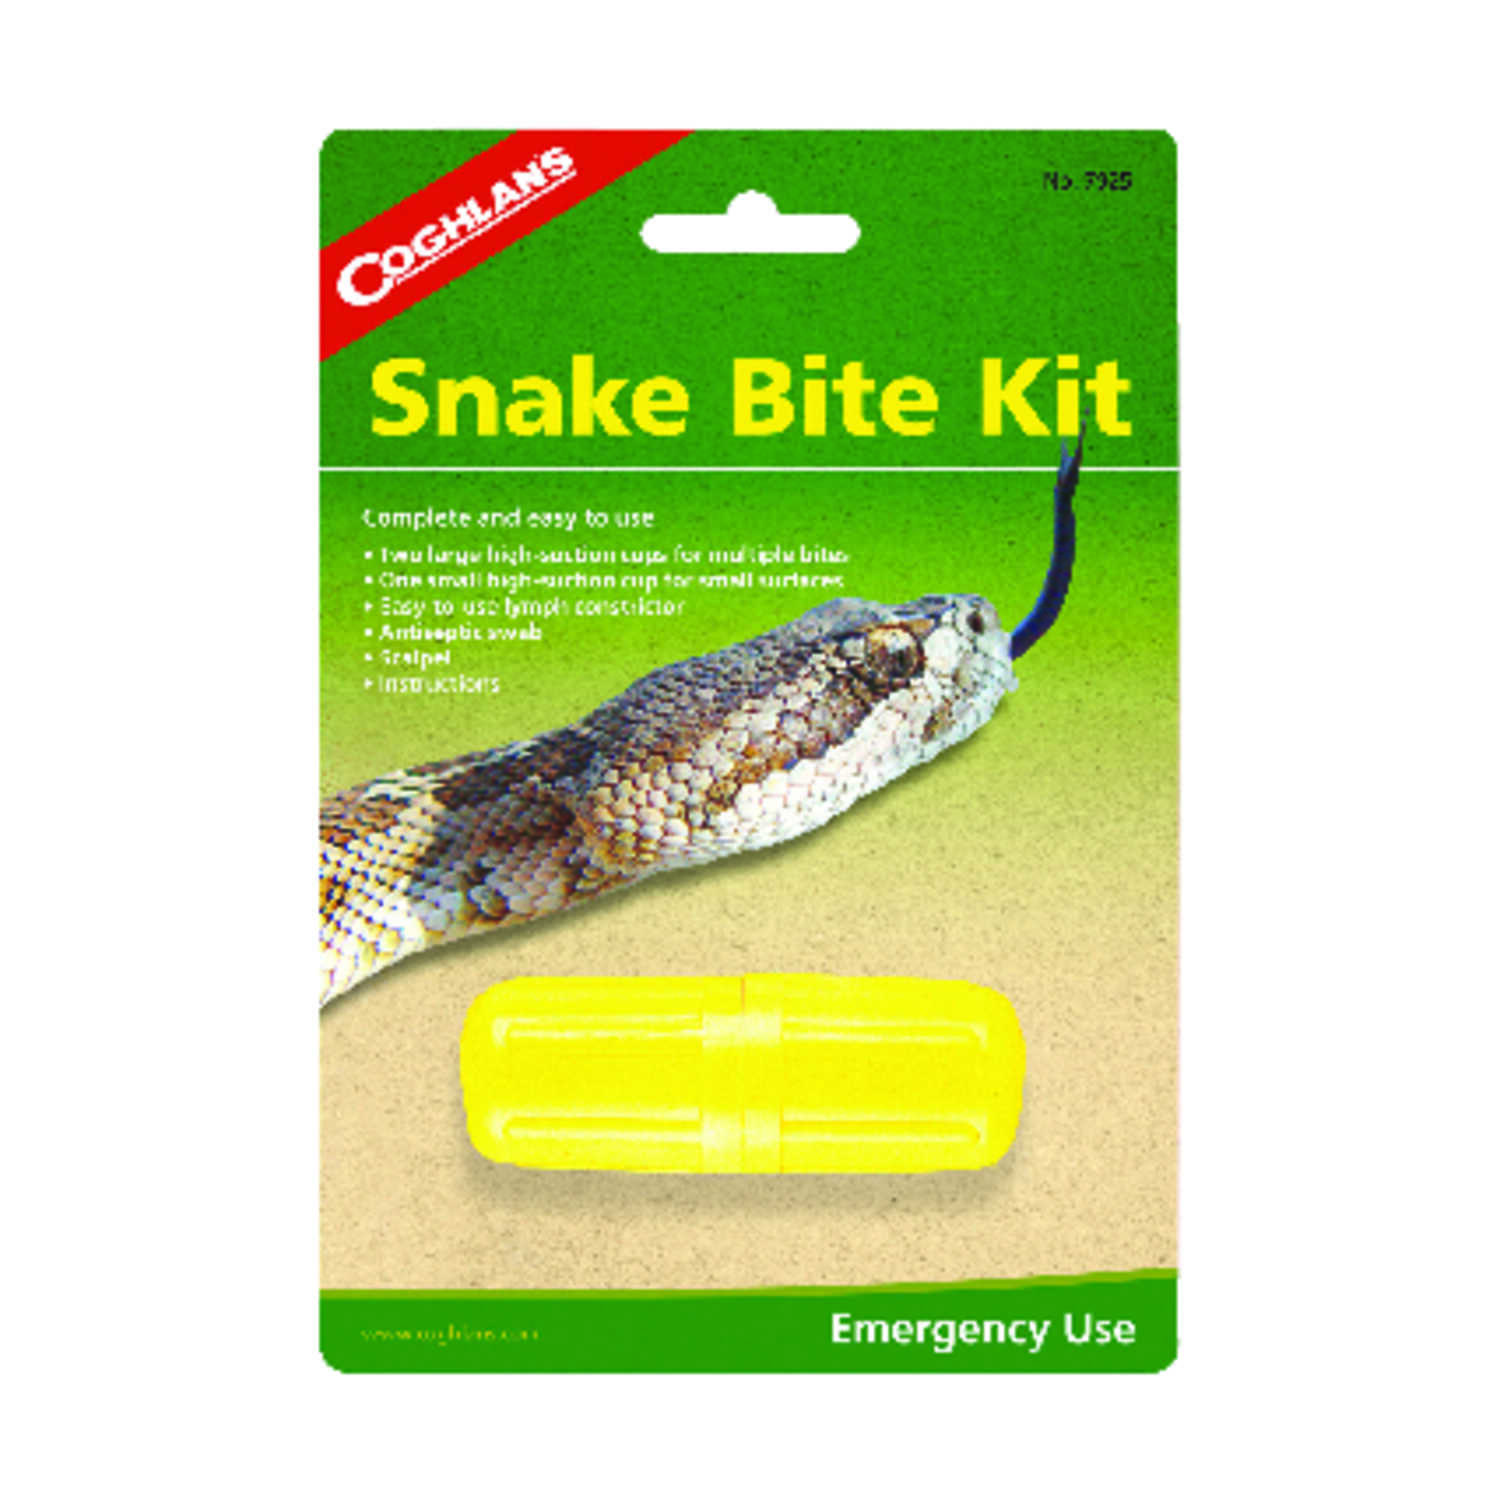 Coghlan's  Yellow  First Aid Snake Bite Kit  7.3 in. H x 1.3 in. W x 1.125 in. L 1 pk